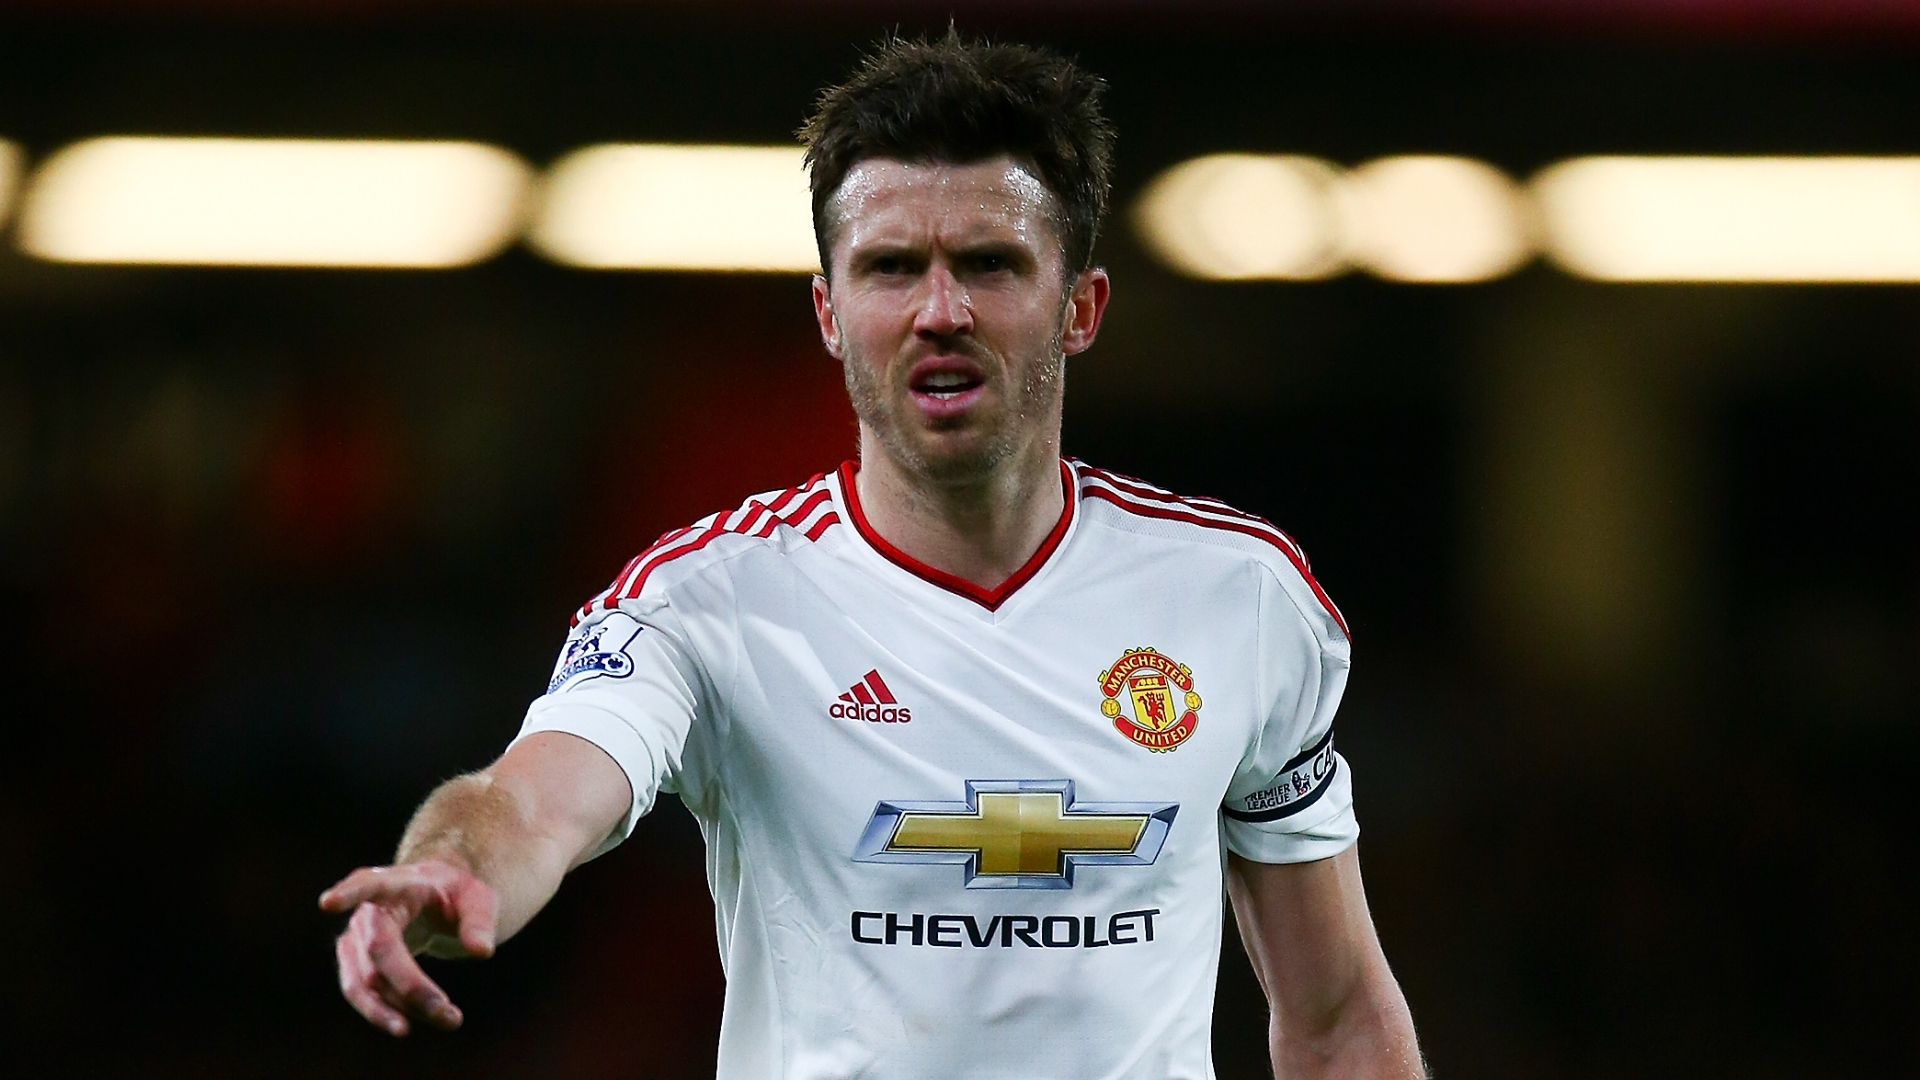 RUMOURS: Carrick linked with Manchester United exit